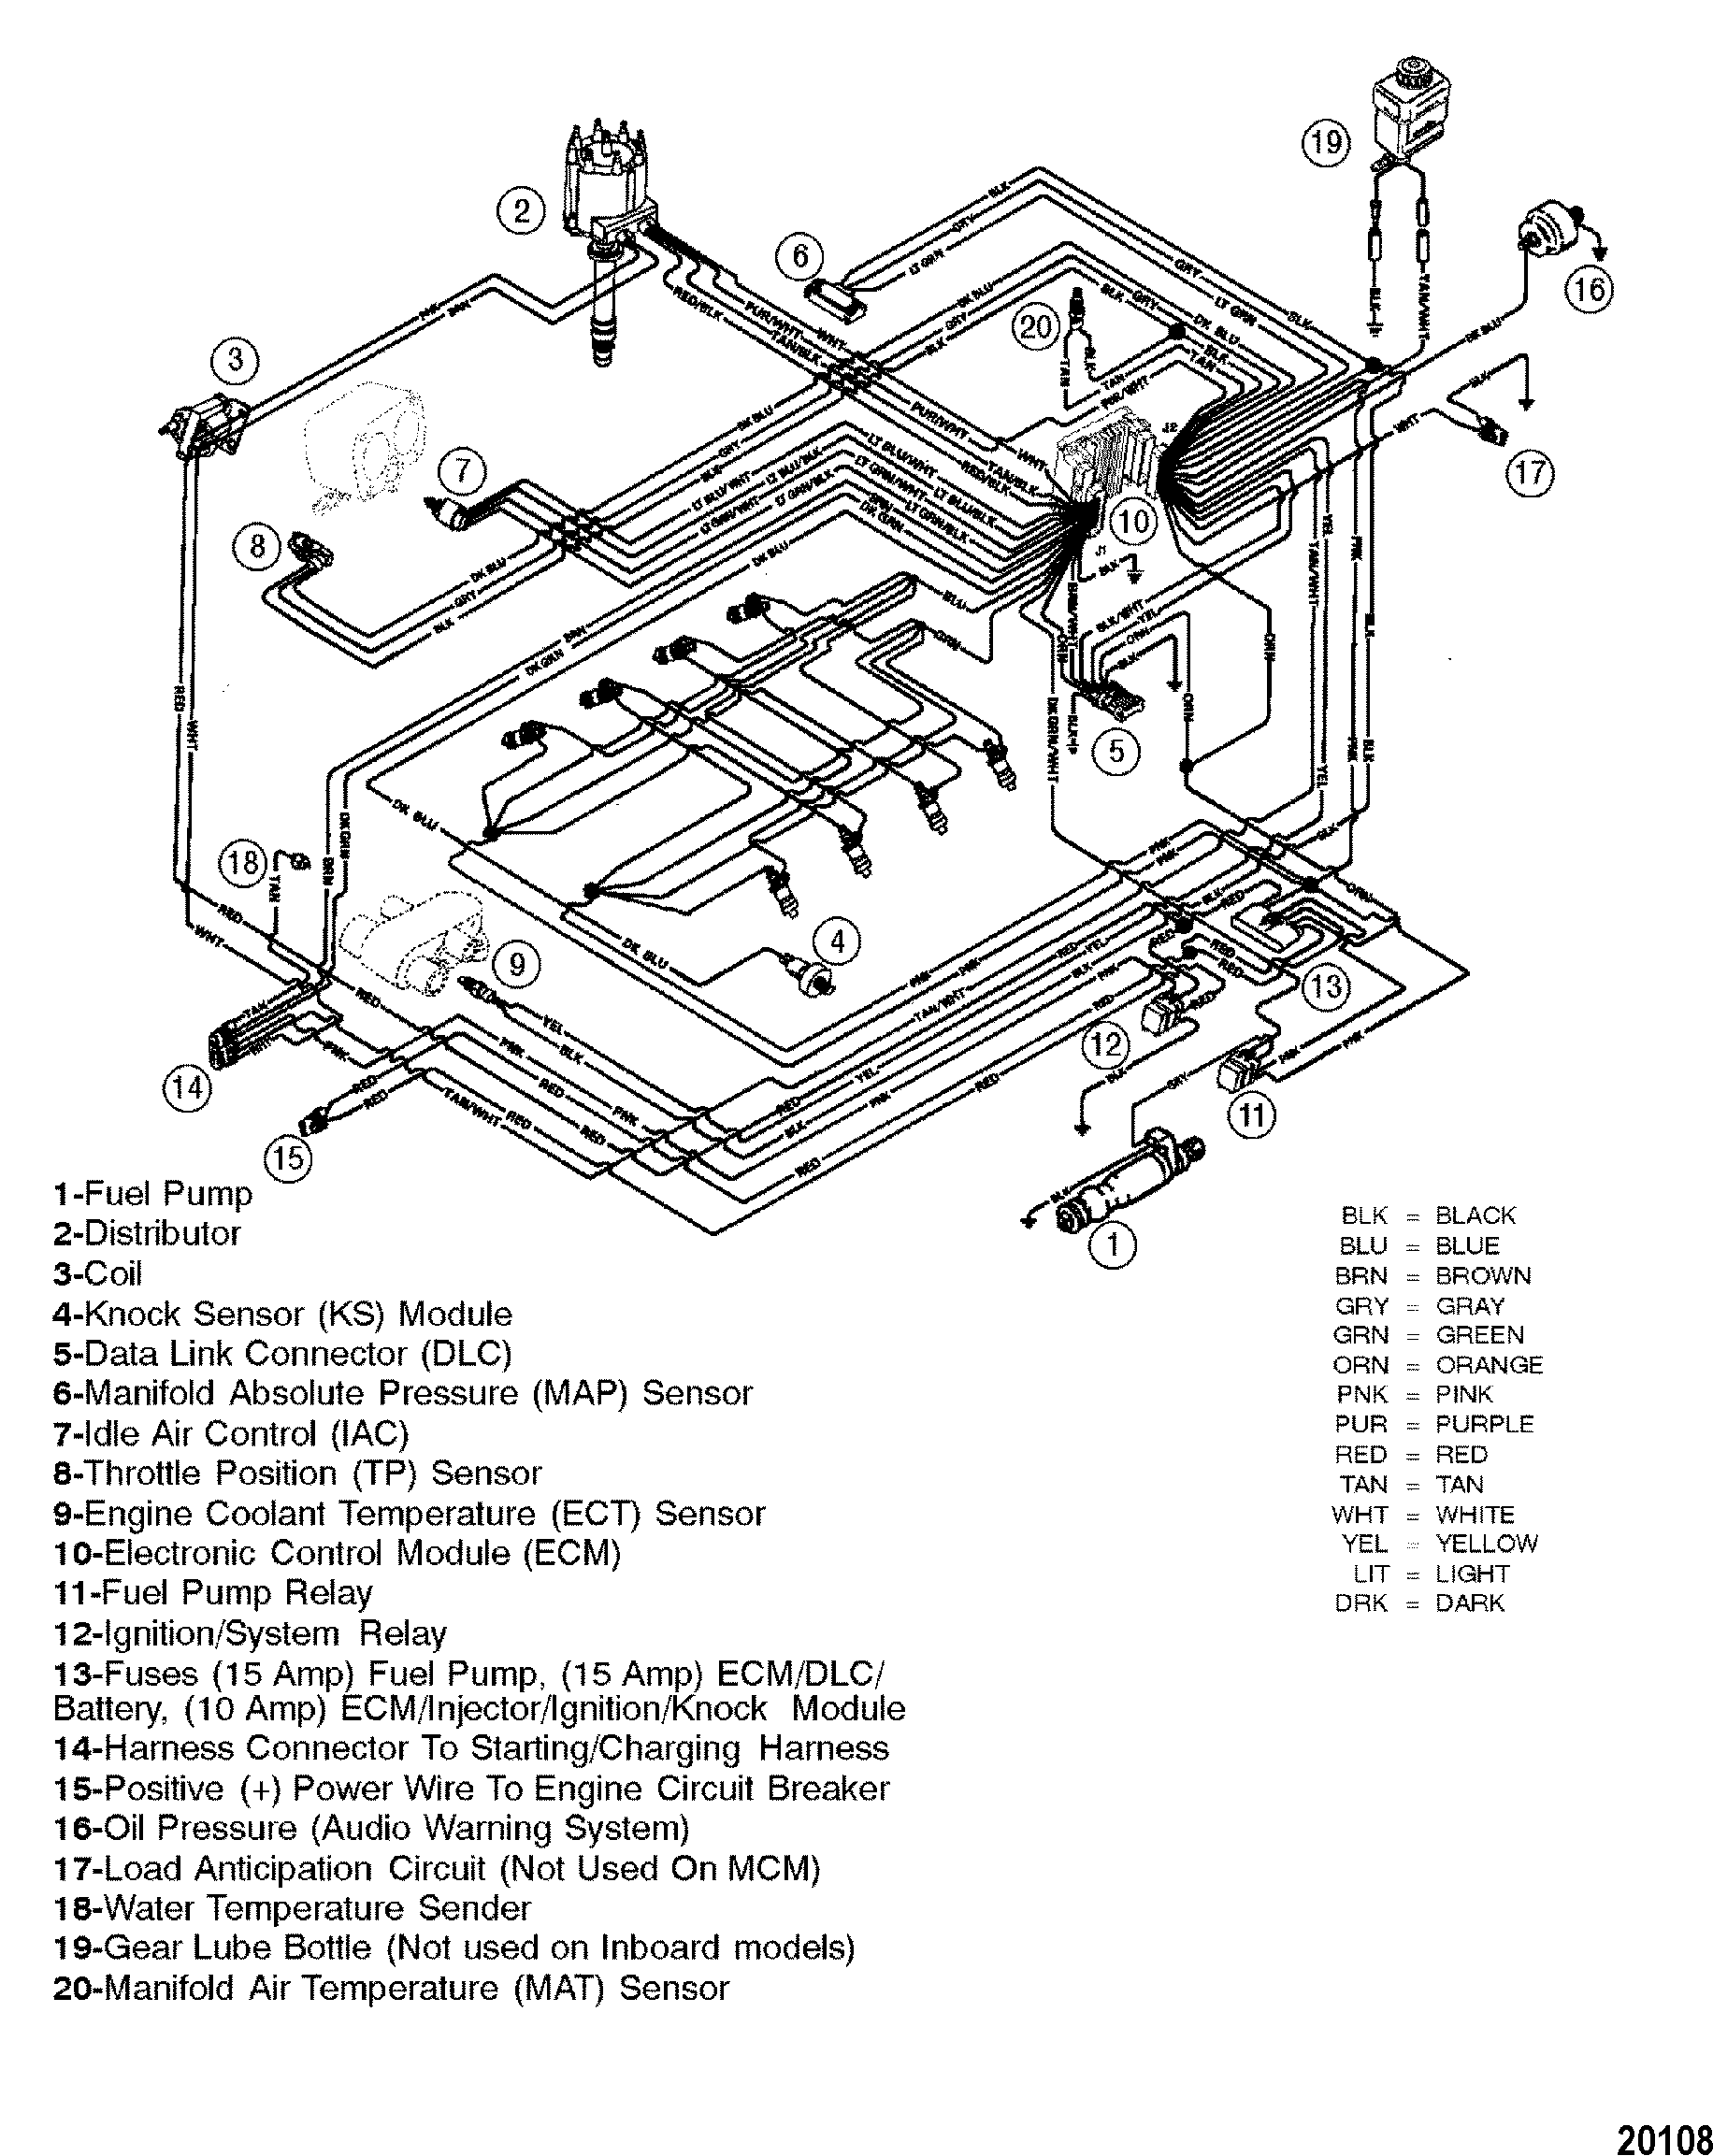 hight resolution of chevy 5 0 engine diagram good guide of wiring diagram u2022 rh getescorts pro 2003 8